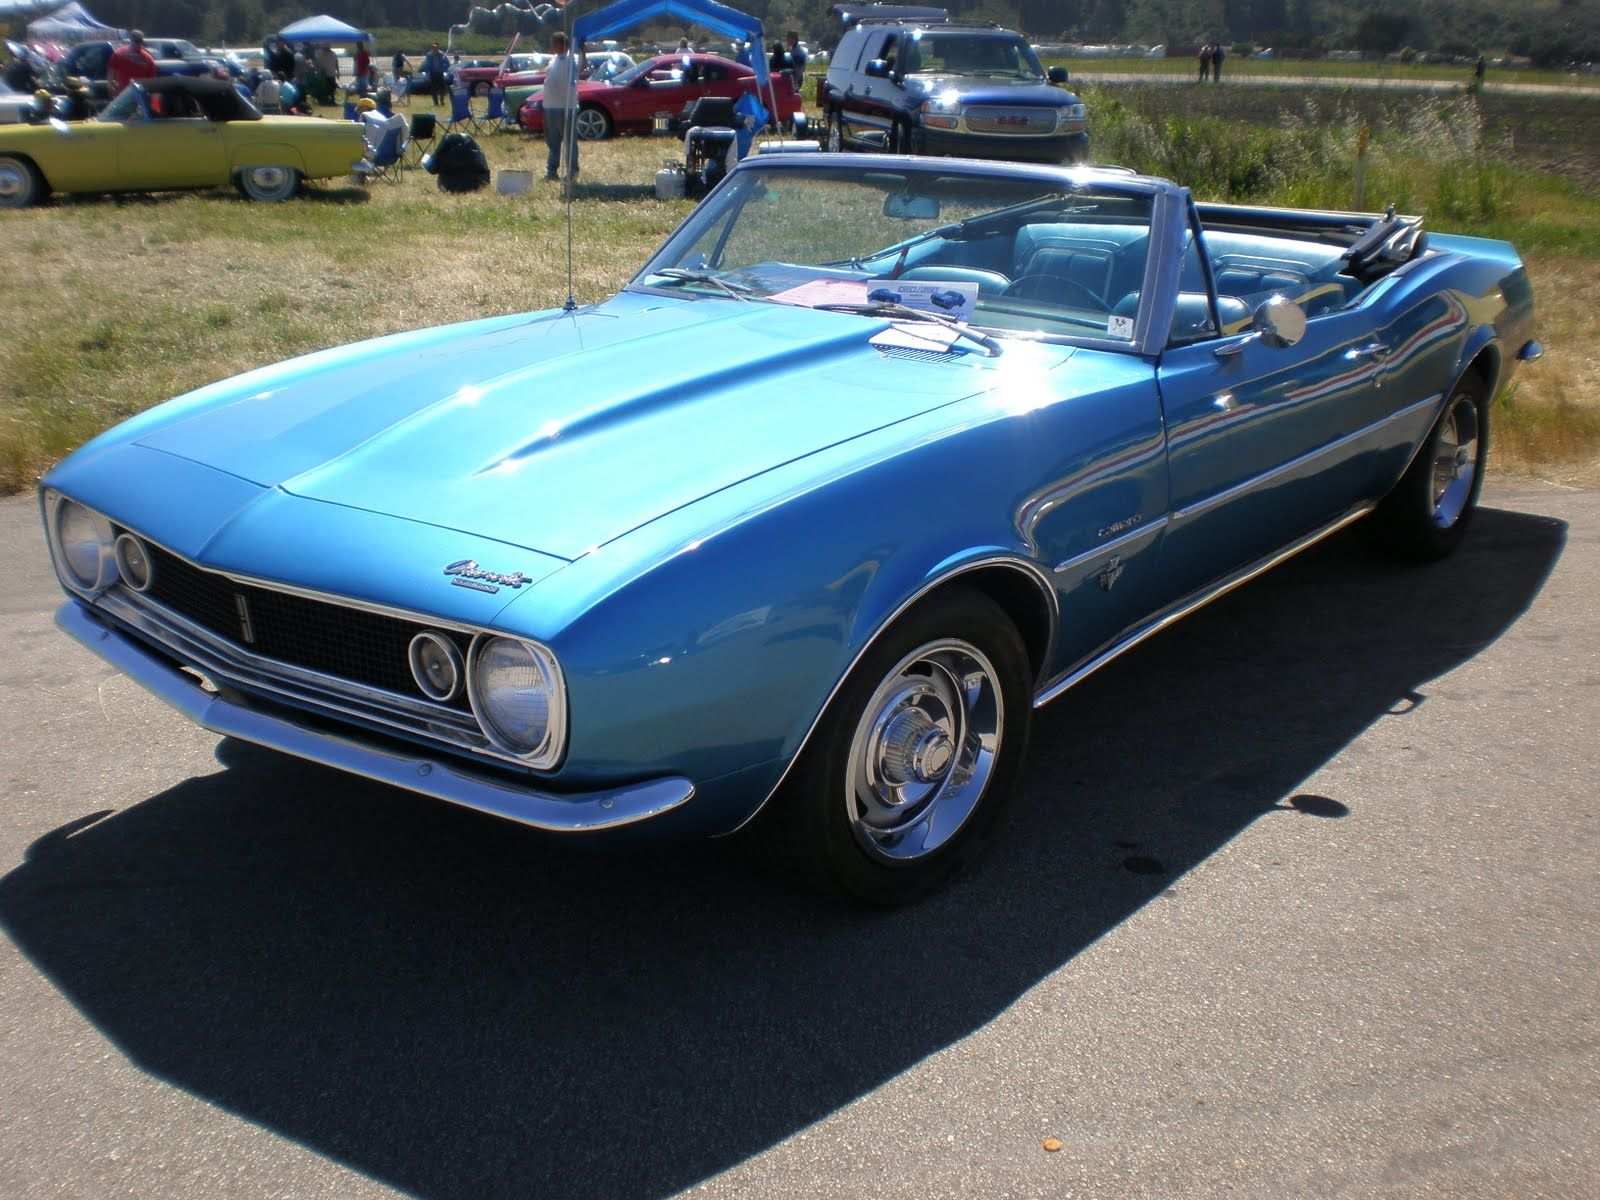 1967 convertible chevy camaro my dream cars. Black Bedroom Furniture Sets. Home Design Ideas